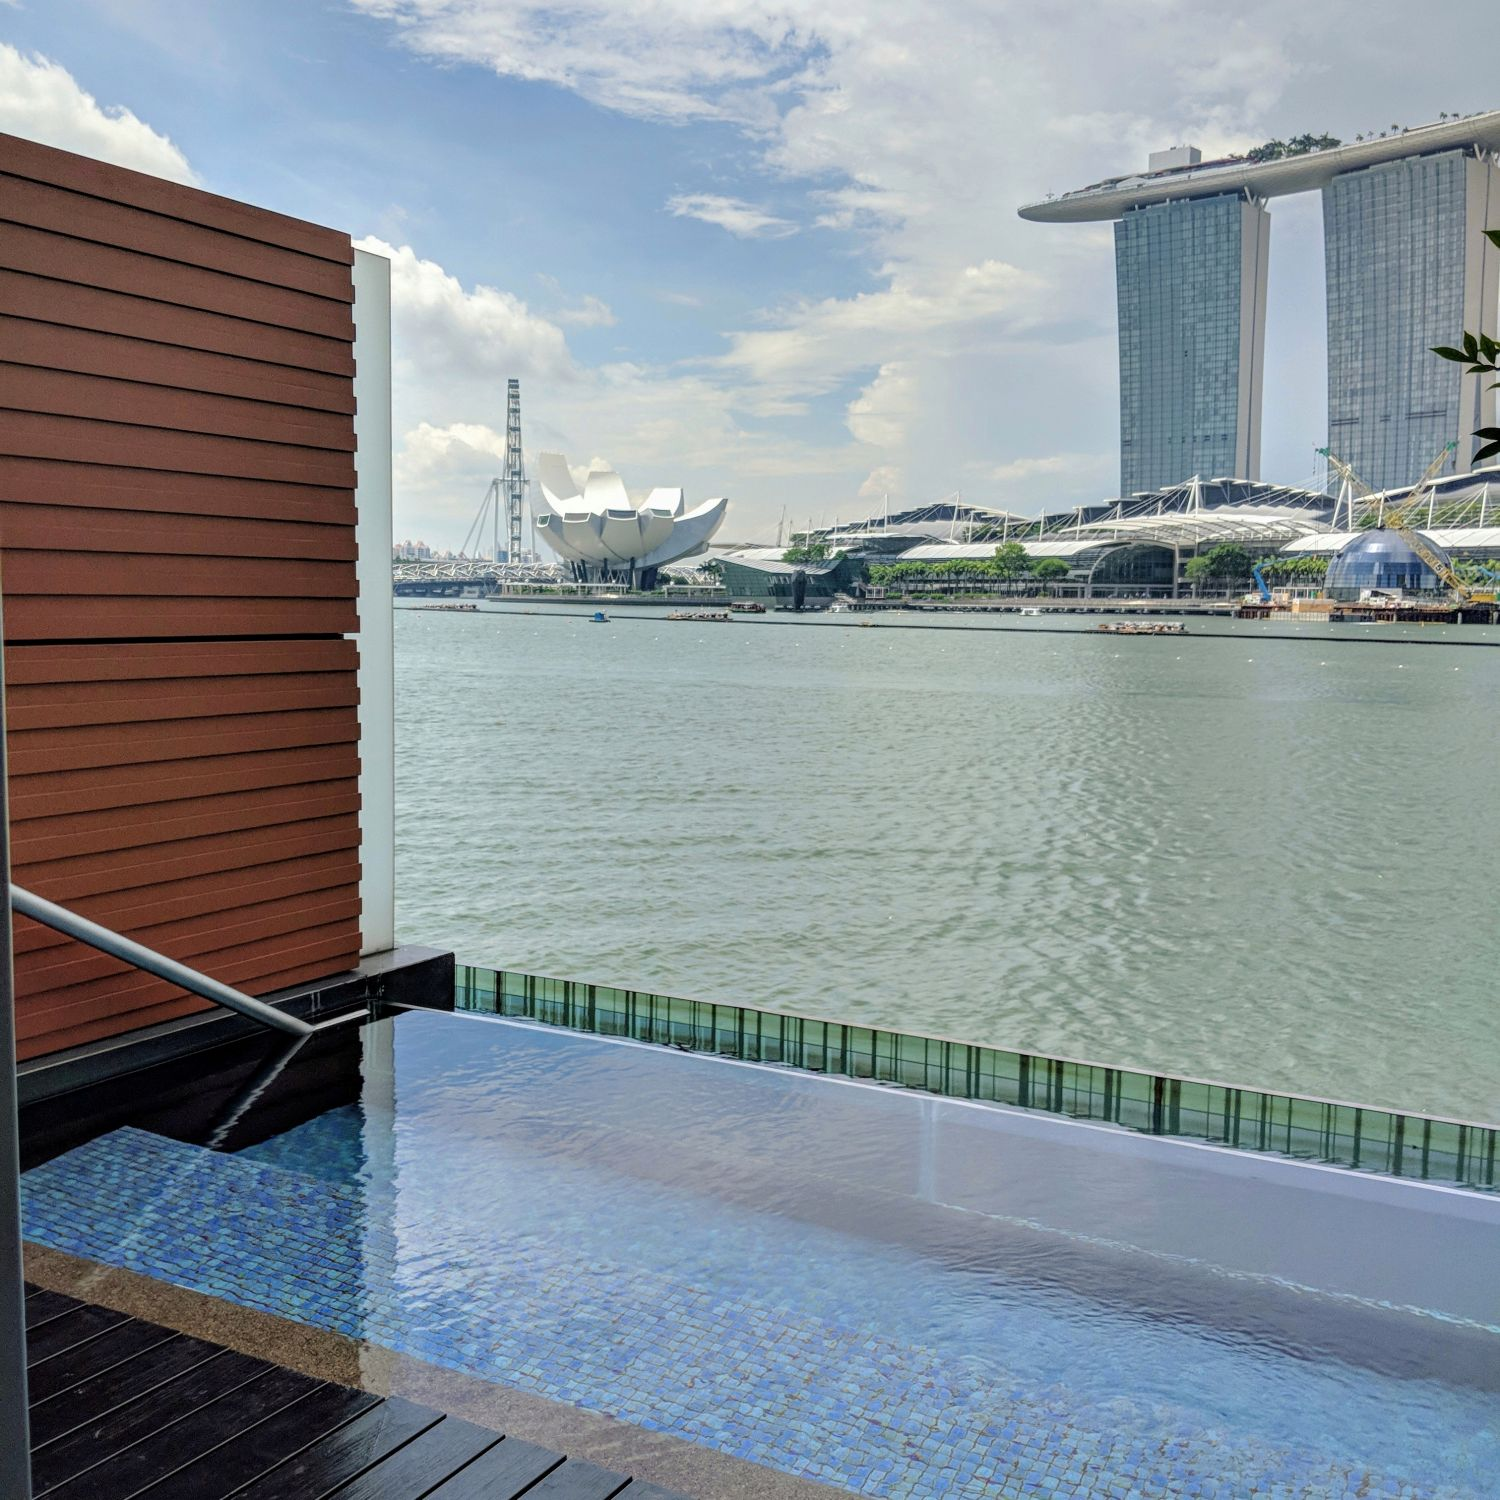 The Fullerton Bay Hotel Singapore Premier Bay View Room with Jacuzzi Private Jacuzzi